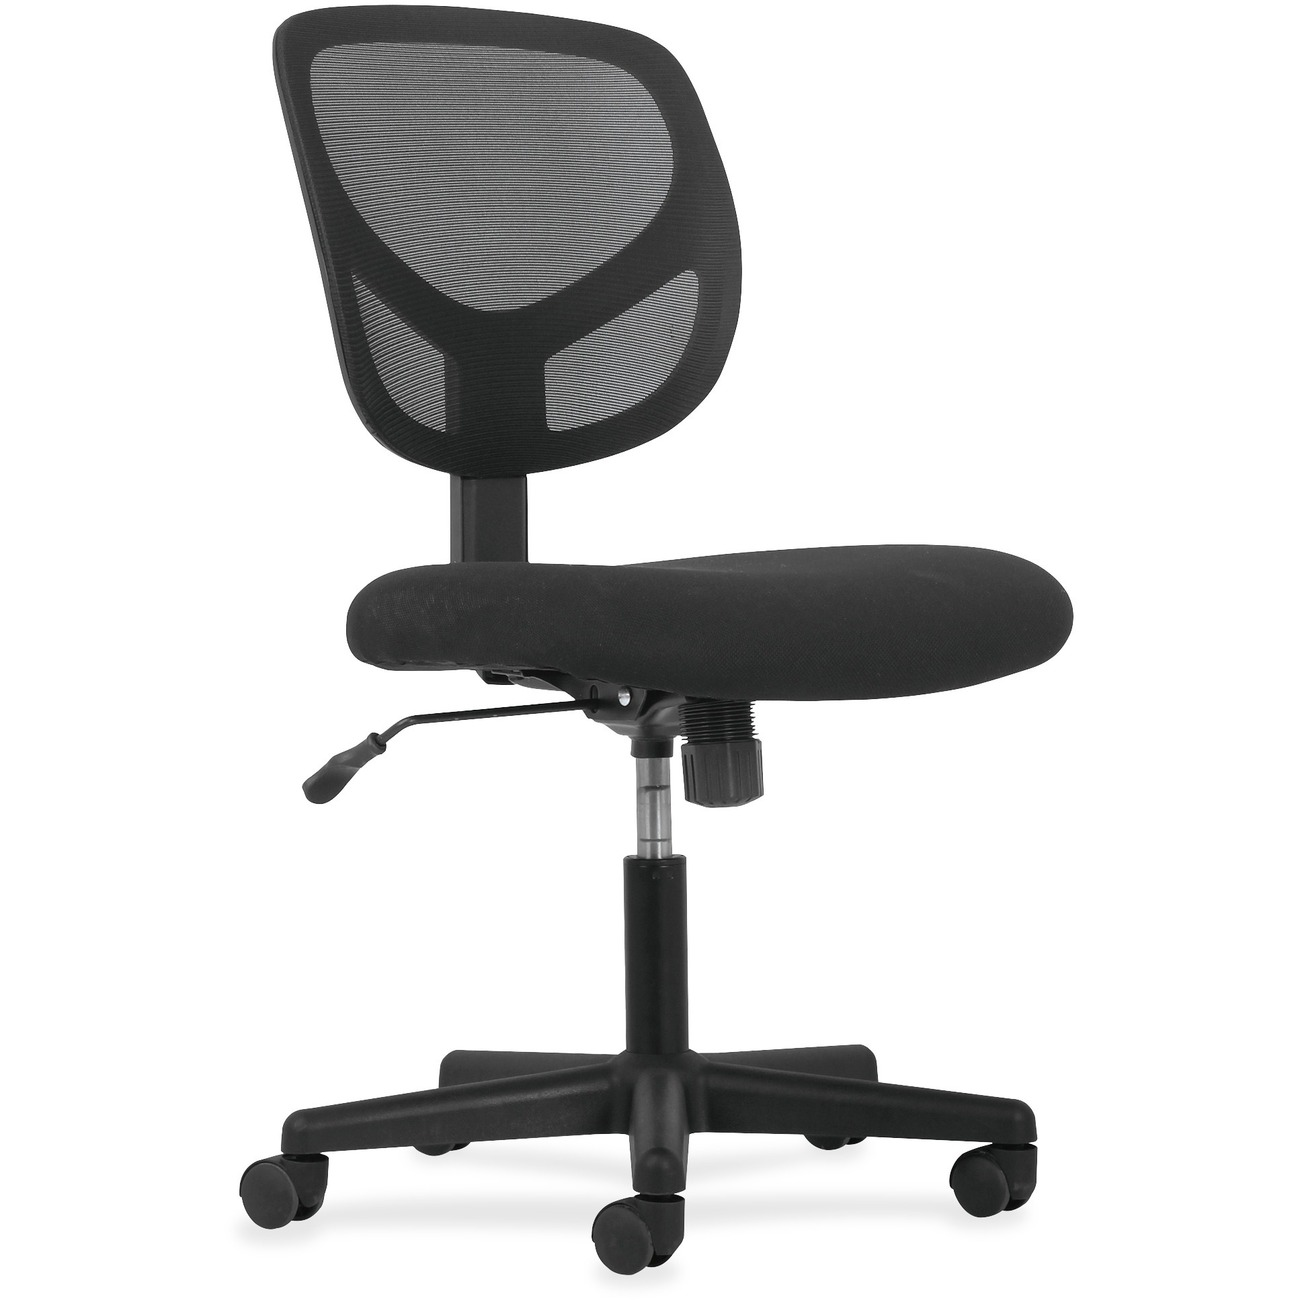 office chair controls. Mid-back Task Features A Breathable Mesh Back And Durable Sandwich On The Seat. It Also Offers Simple Intuitive Controls Such As Pneumatic Office Chair